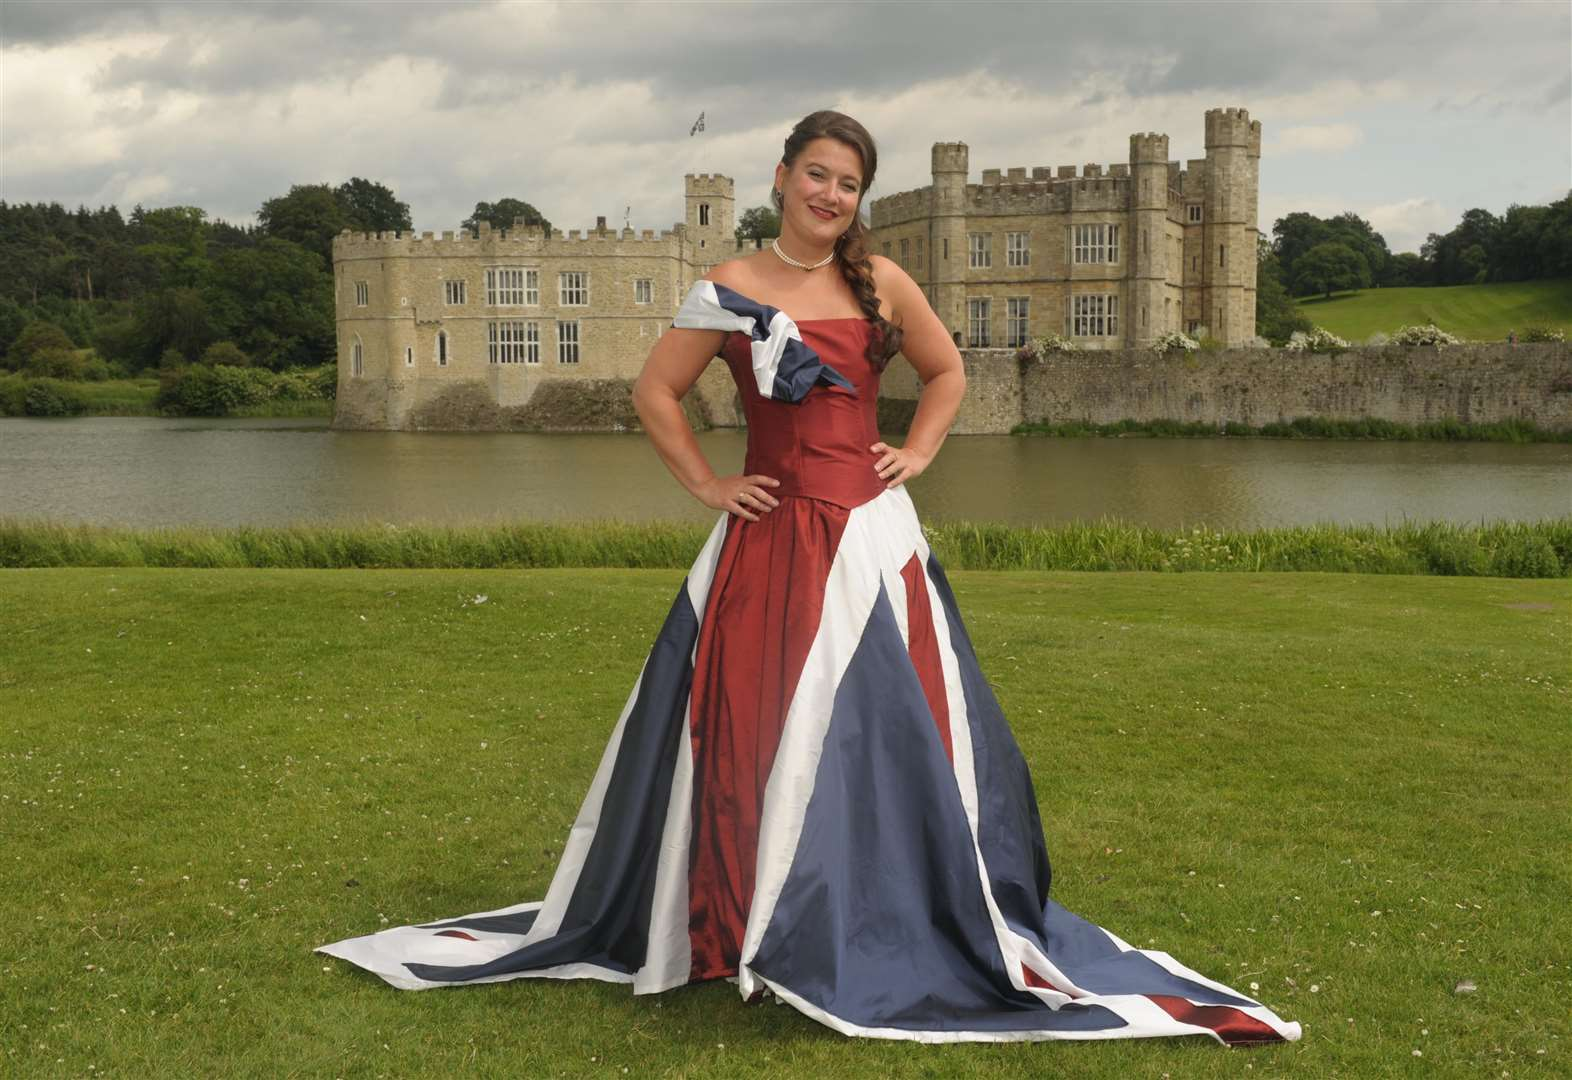 Leeds Castle Classical Concert's big birthday bash